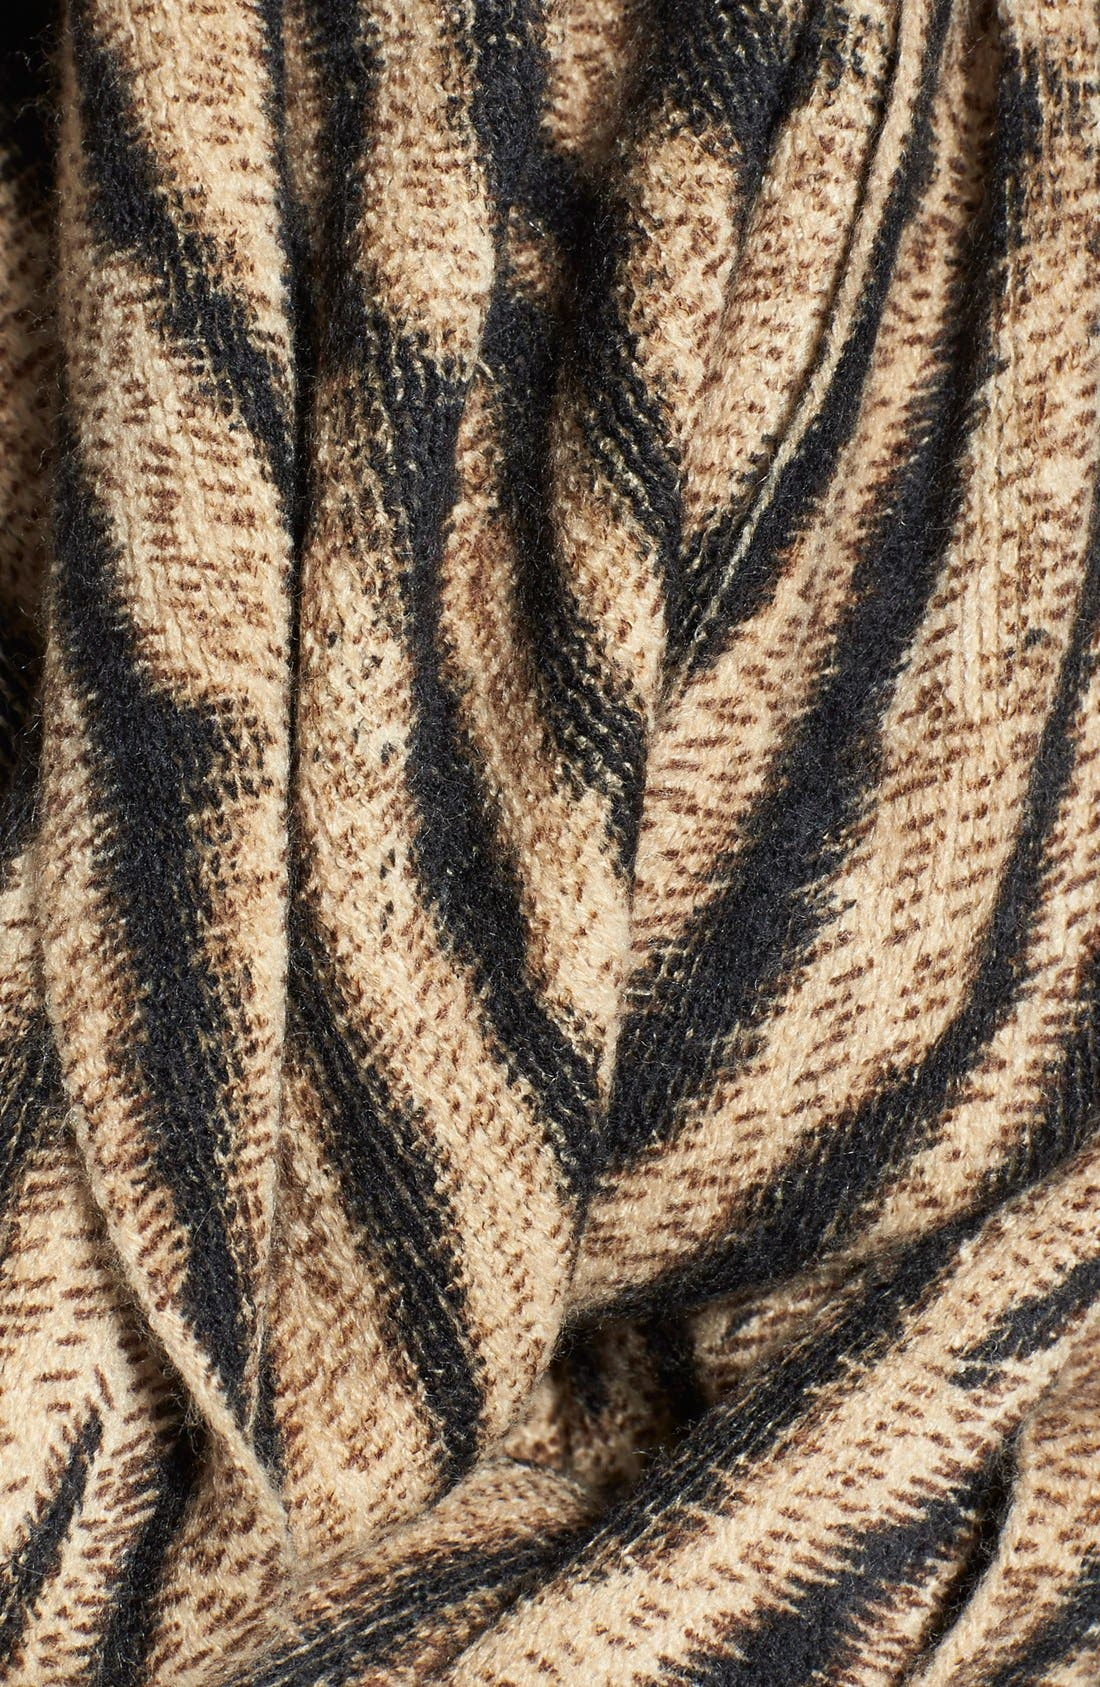 'Beobob' Tiger Print Infinity Scarf,                             Alternate thumbnail 2, color,                             200